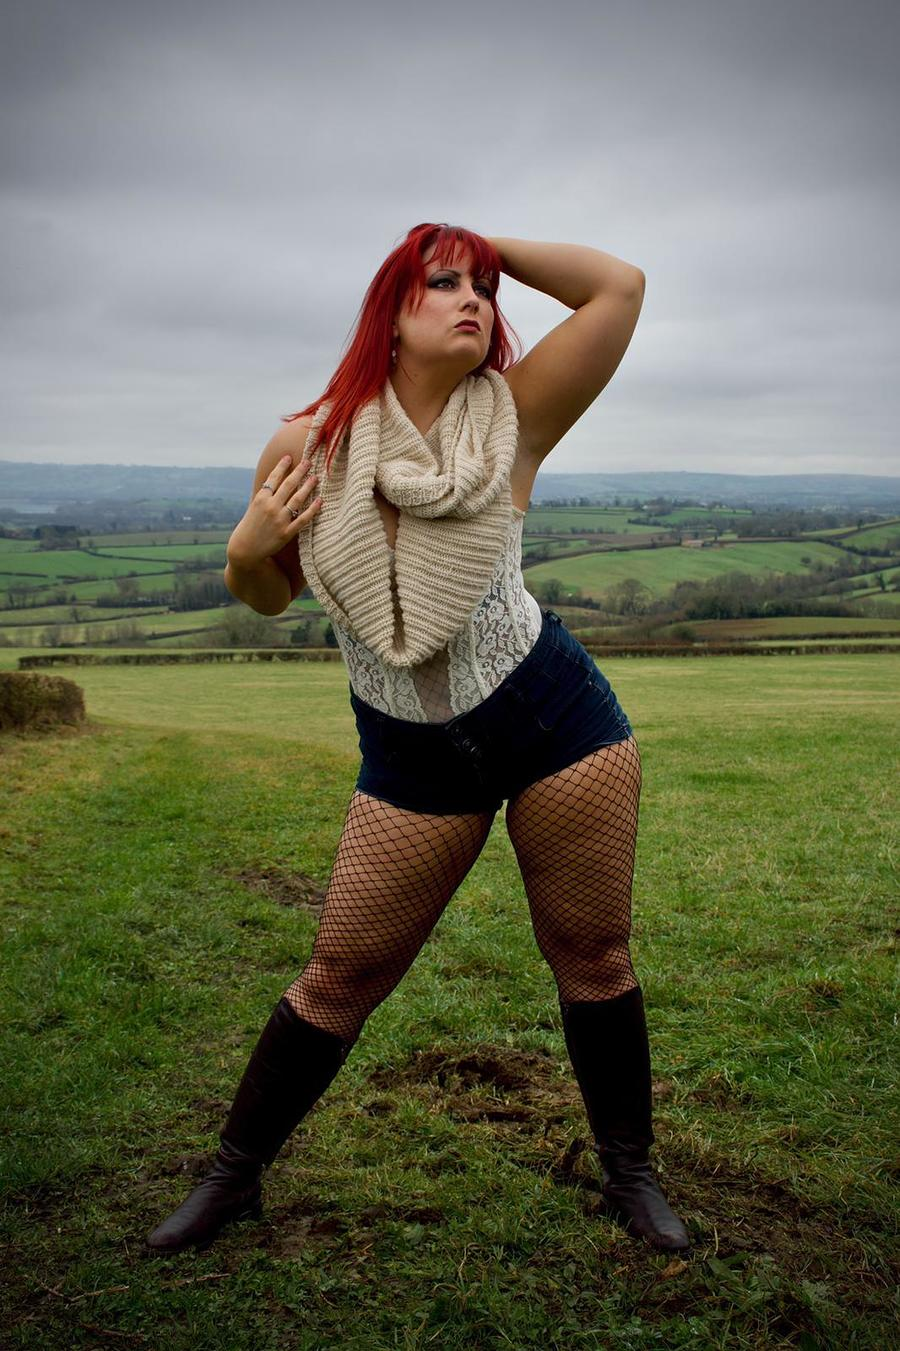 On a Lonely Hilltop / Photography by Riverstone Photography, Model Alex Kelsey, Makeup by Alex Kelsey / Uploaded 9th March 2020 @ 01:19 PM